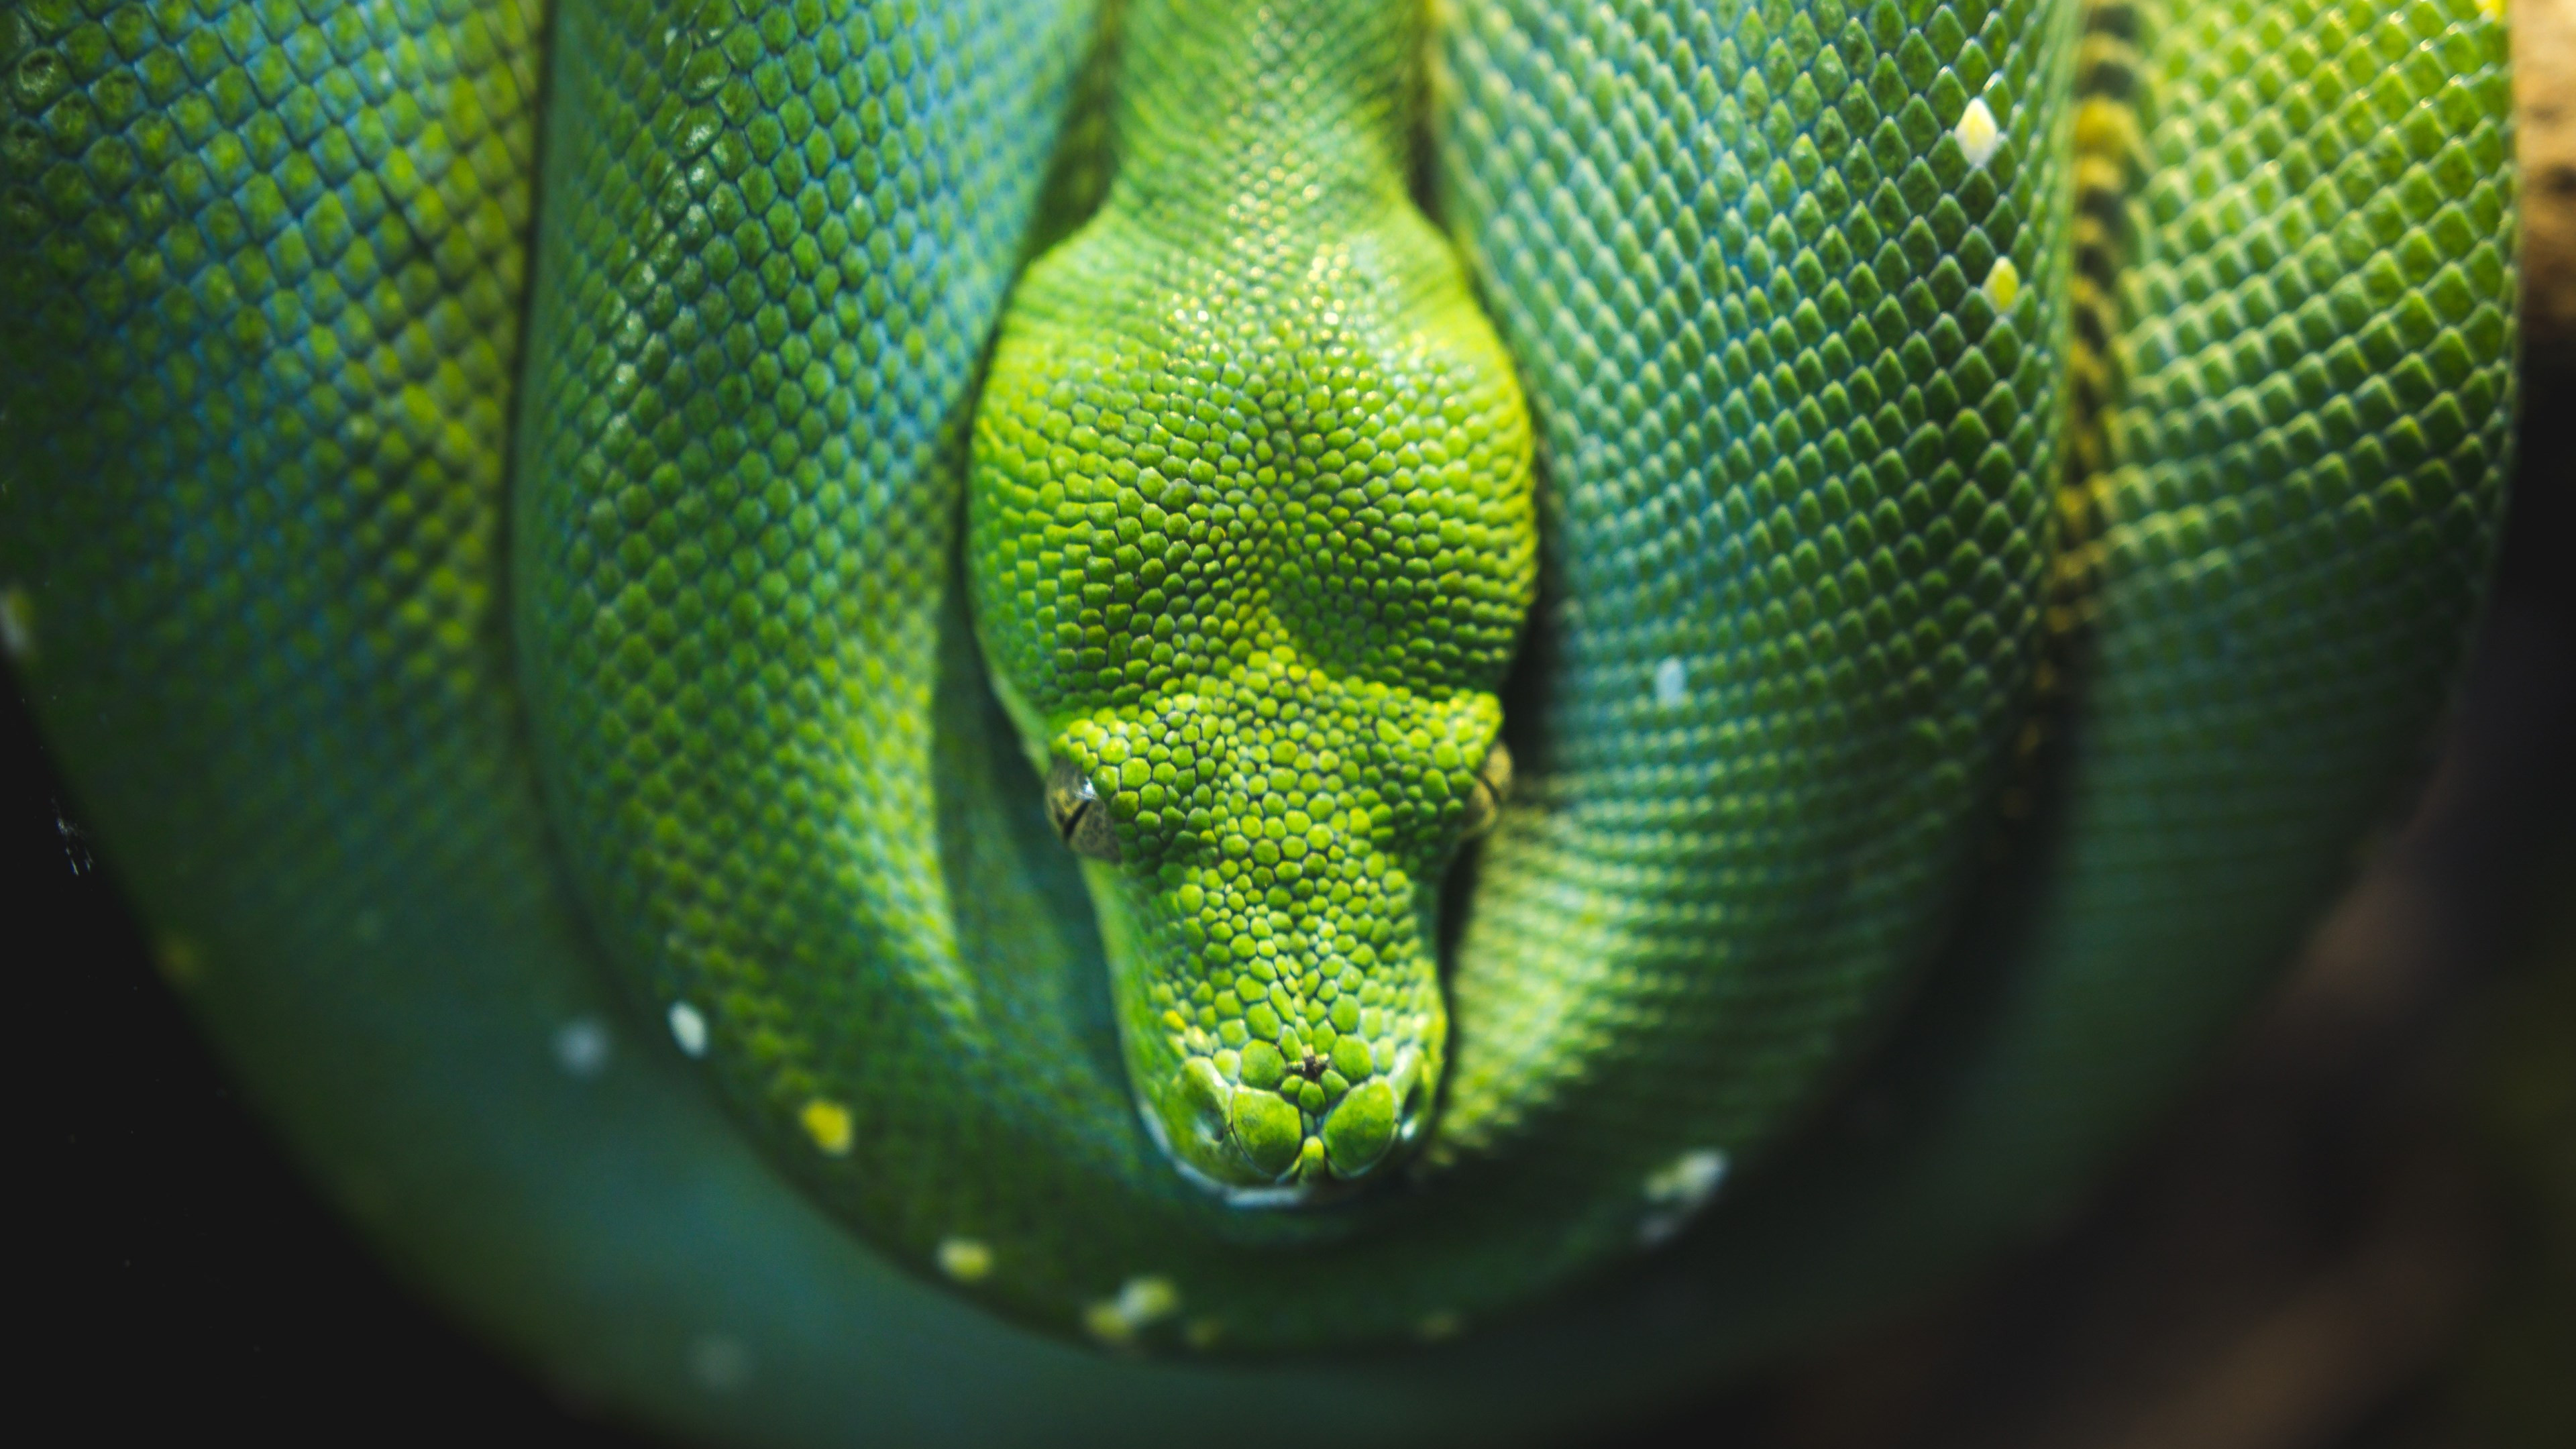 Green Tree snake python | 3840x2160 wallpaper